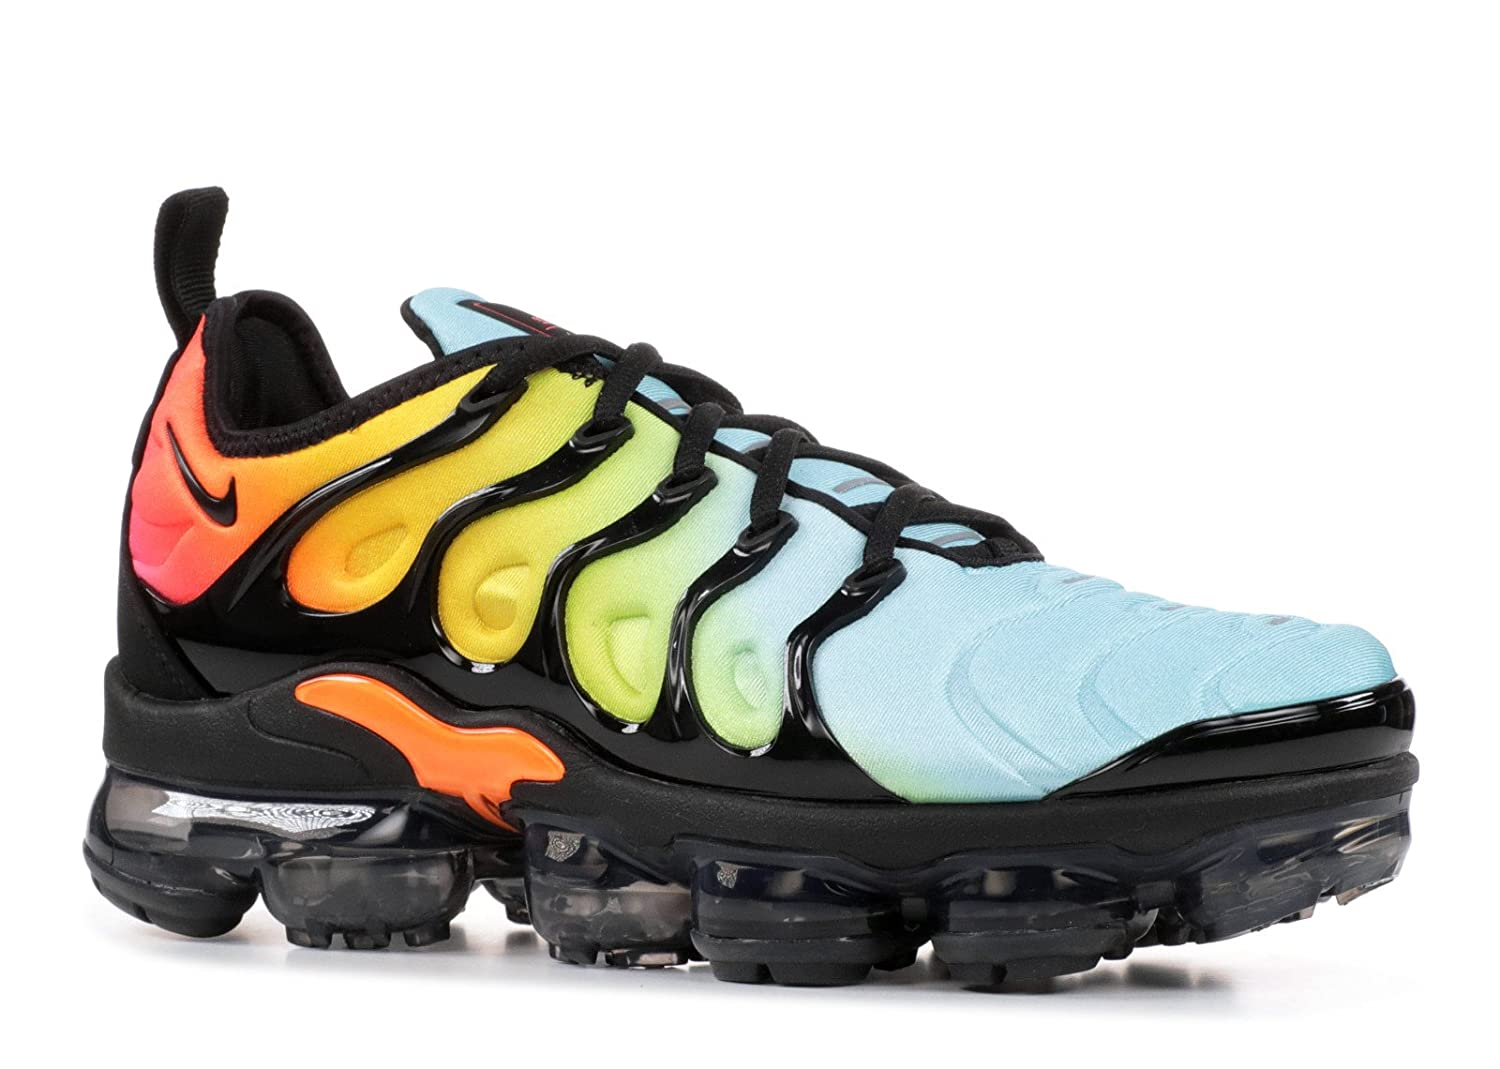 the best attitude 24c91 a3253 Nike W Air Vapormax Plus - US 5.5W